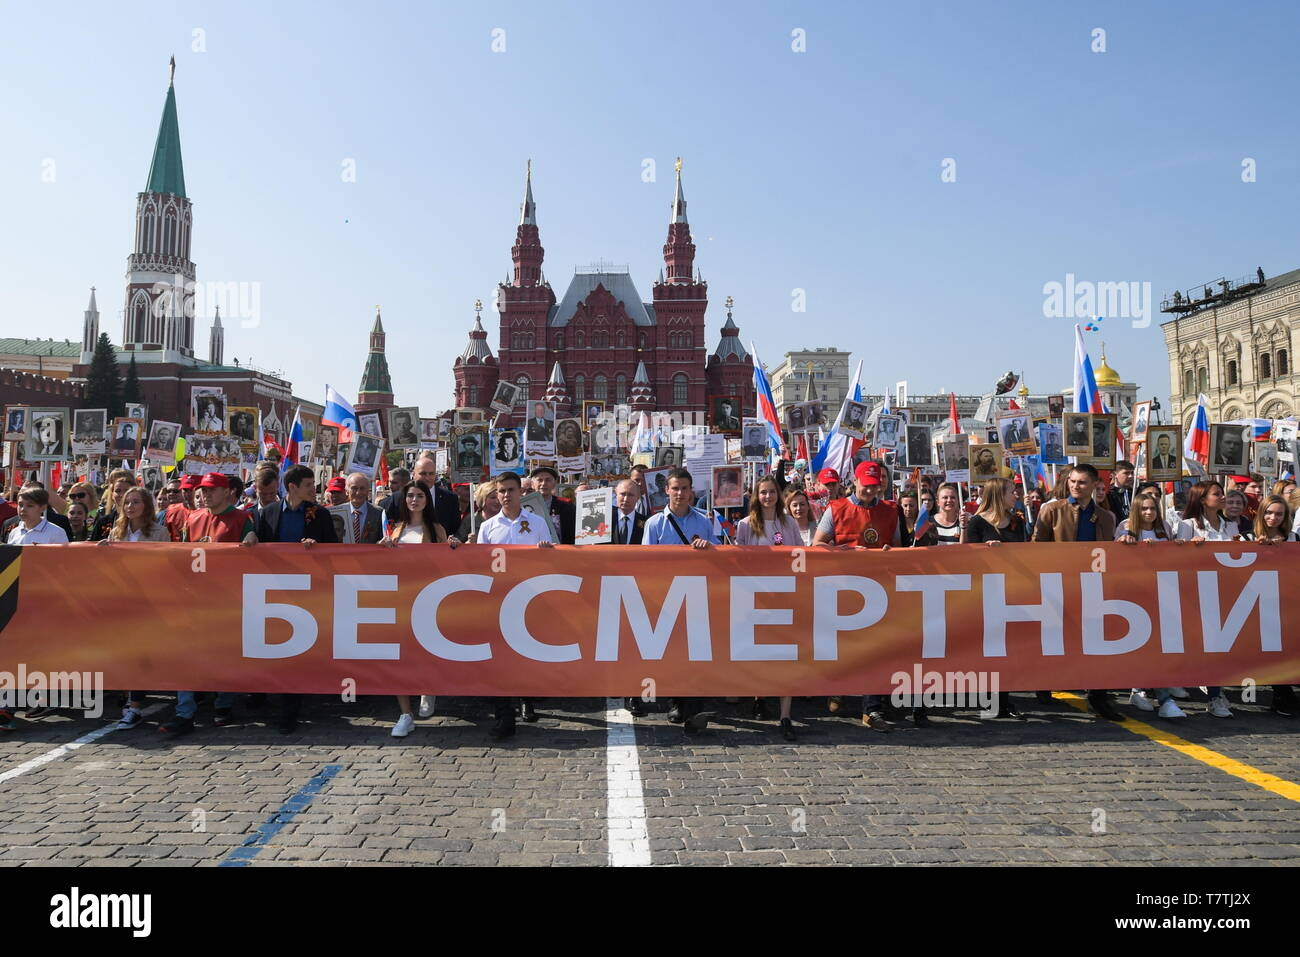 Moscow, Russia. 09th May, 2019. MOSCOW, RUSSIA - MAY 9, 2019: Russia's President Vladimir Putin (C) carries a portrait of his father Vladimir Spiridonovich Putin (1911-1998), who fought in World War II, as he takes part in the Immortal Regiment march in Red Square to mark the 74th anniversary of the Victory over Nazi Germany in the Great Patriotic War, the Eastern Front of World War II. Alexei Druzhinin/Russian Presidential Press and Information Office/TASS Credit: ITAR-TASS News Agency/Alamy Live News - Stock Image